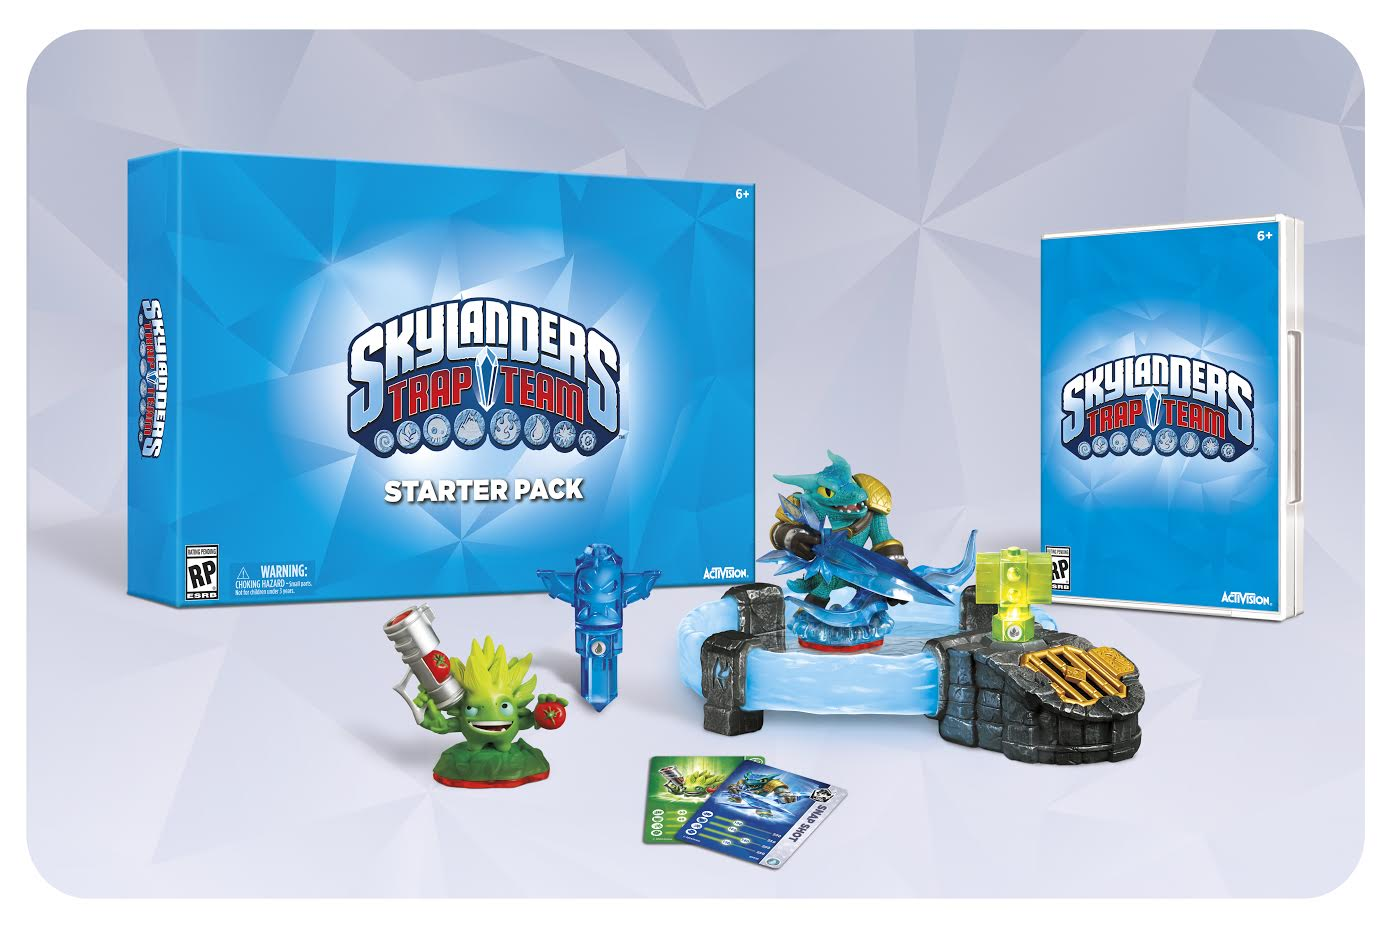 Skylanders Trap Team Starter Pack revealed